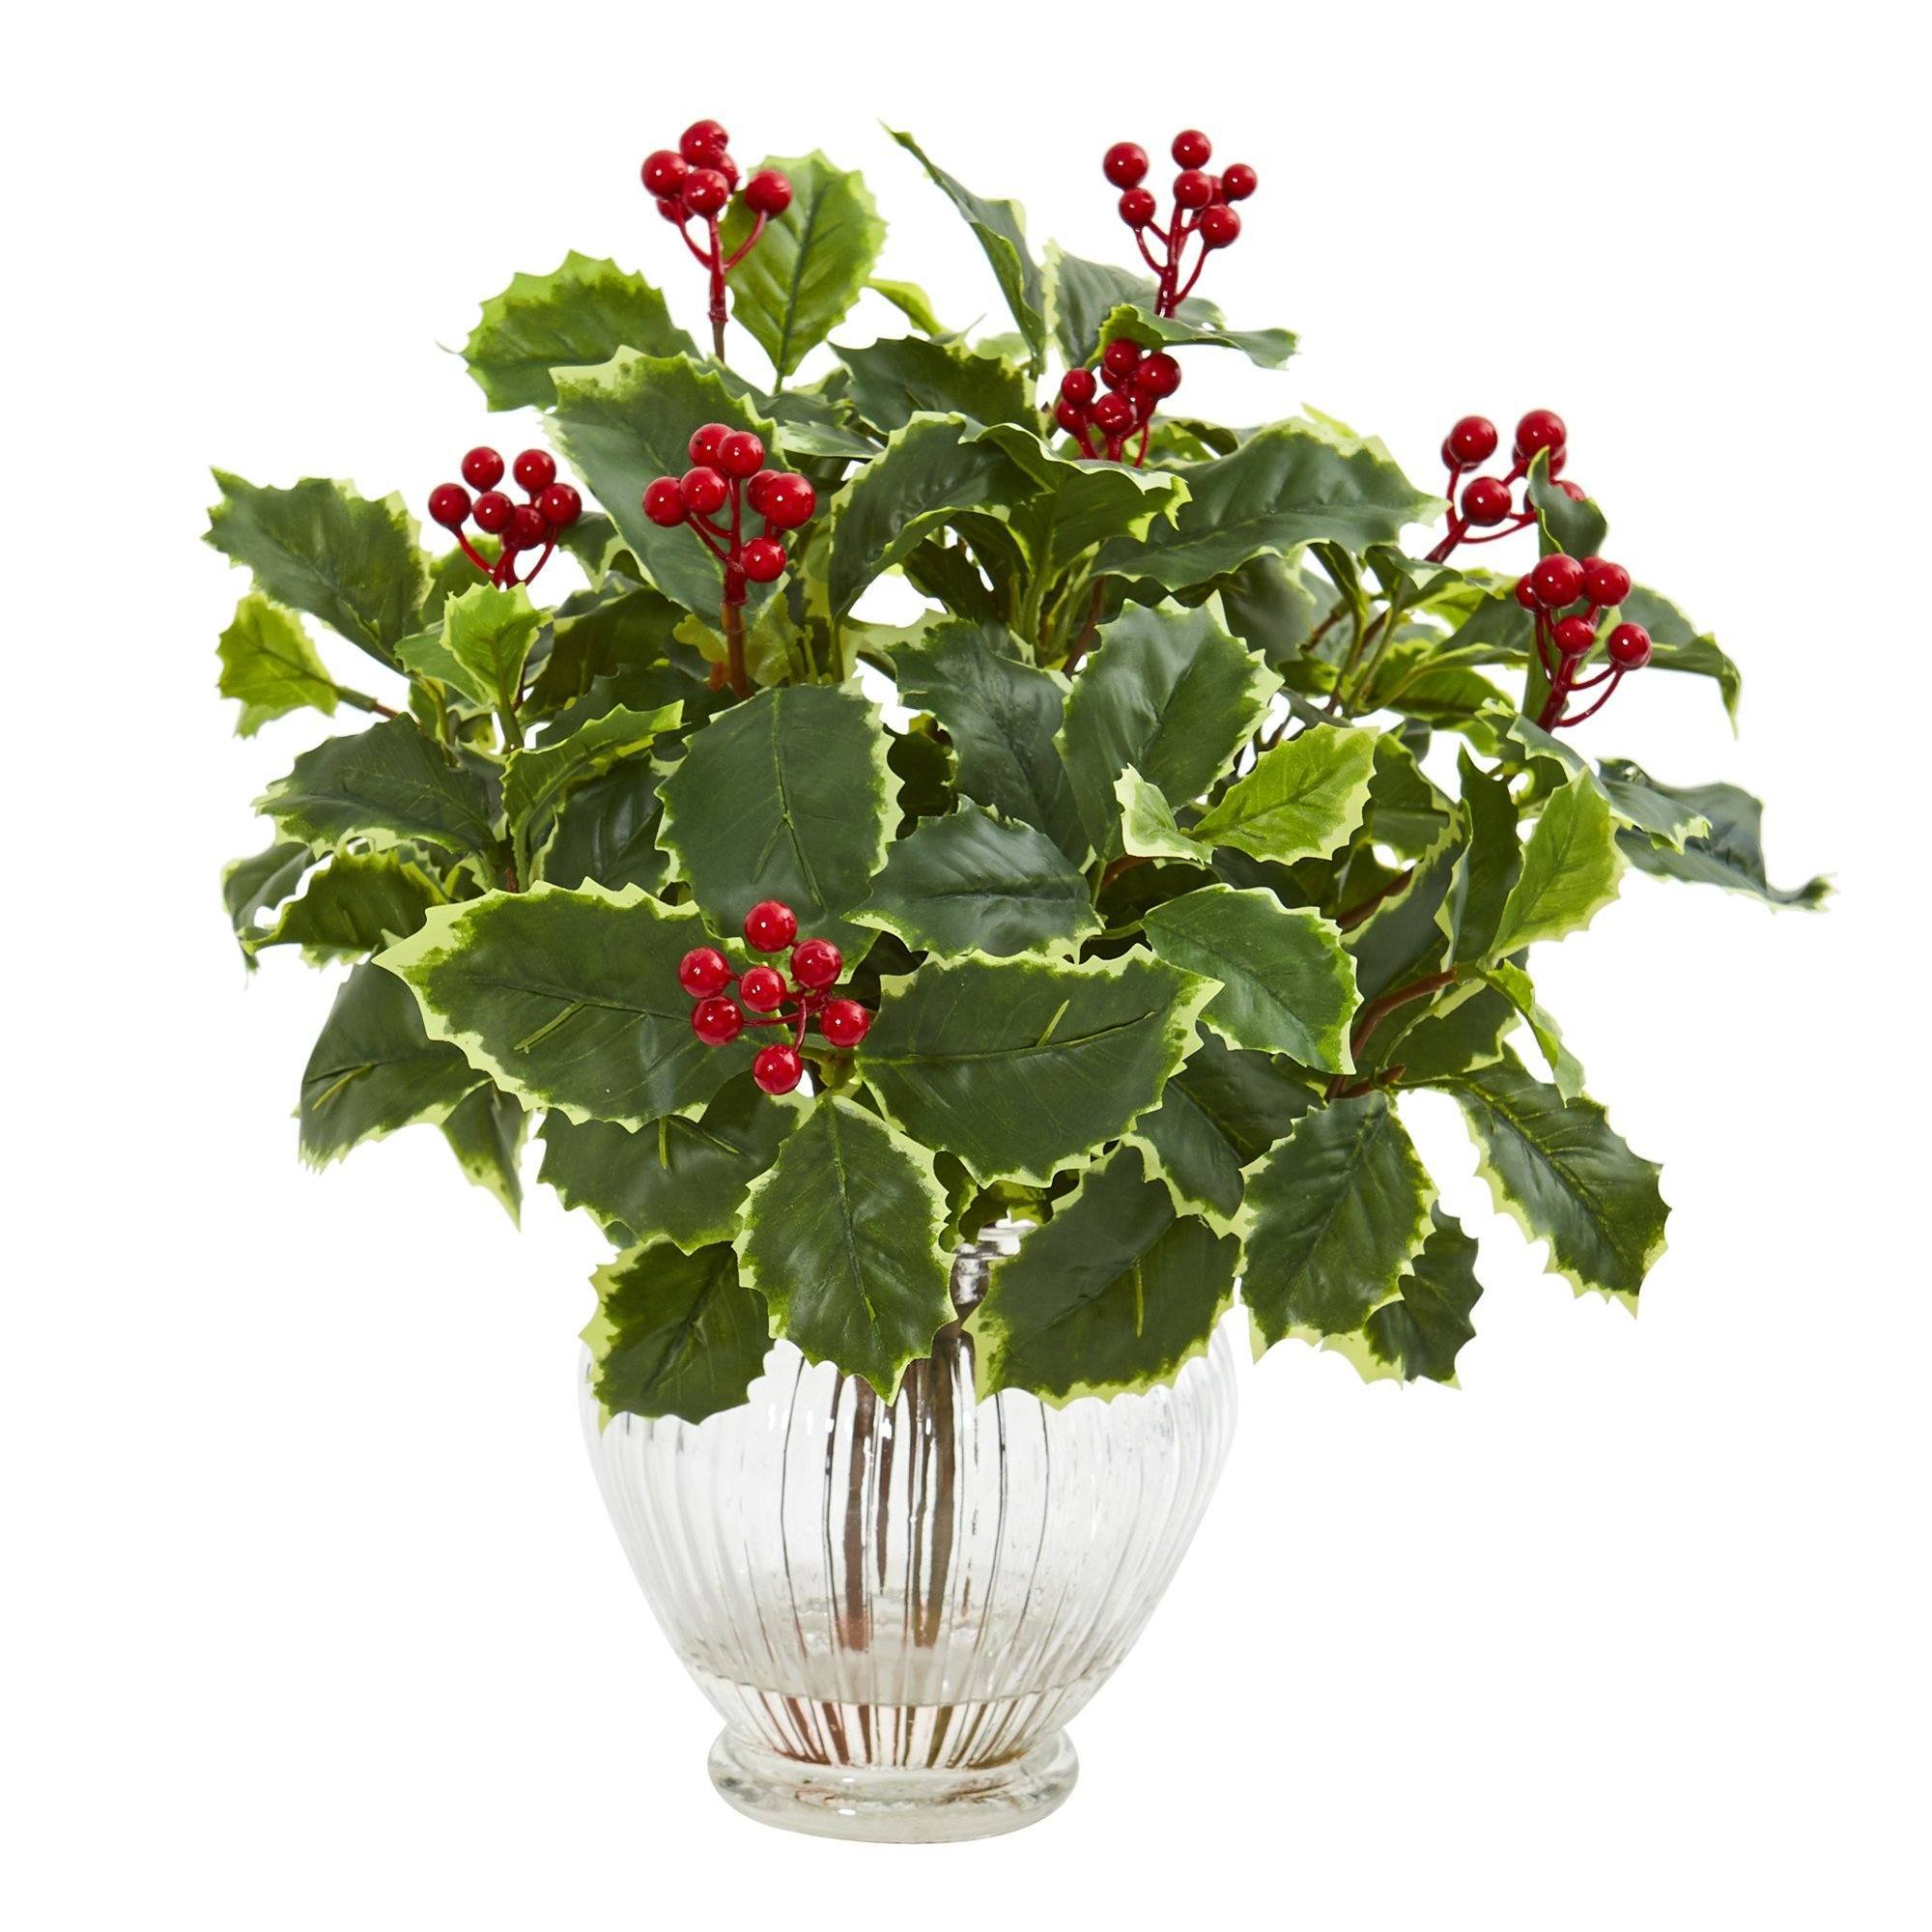 15 Variegated Holly Leaf Artificial Plant In Vase Real Touch Nearly Natural